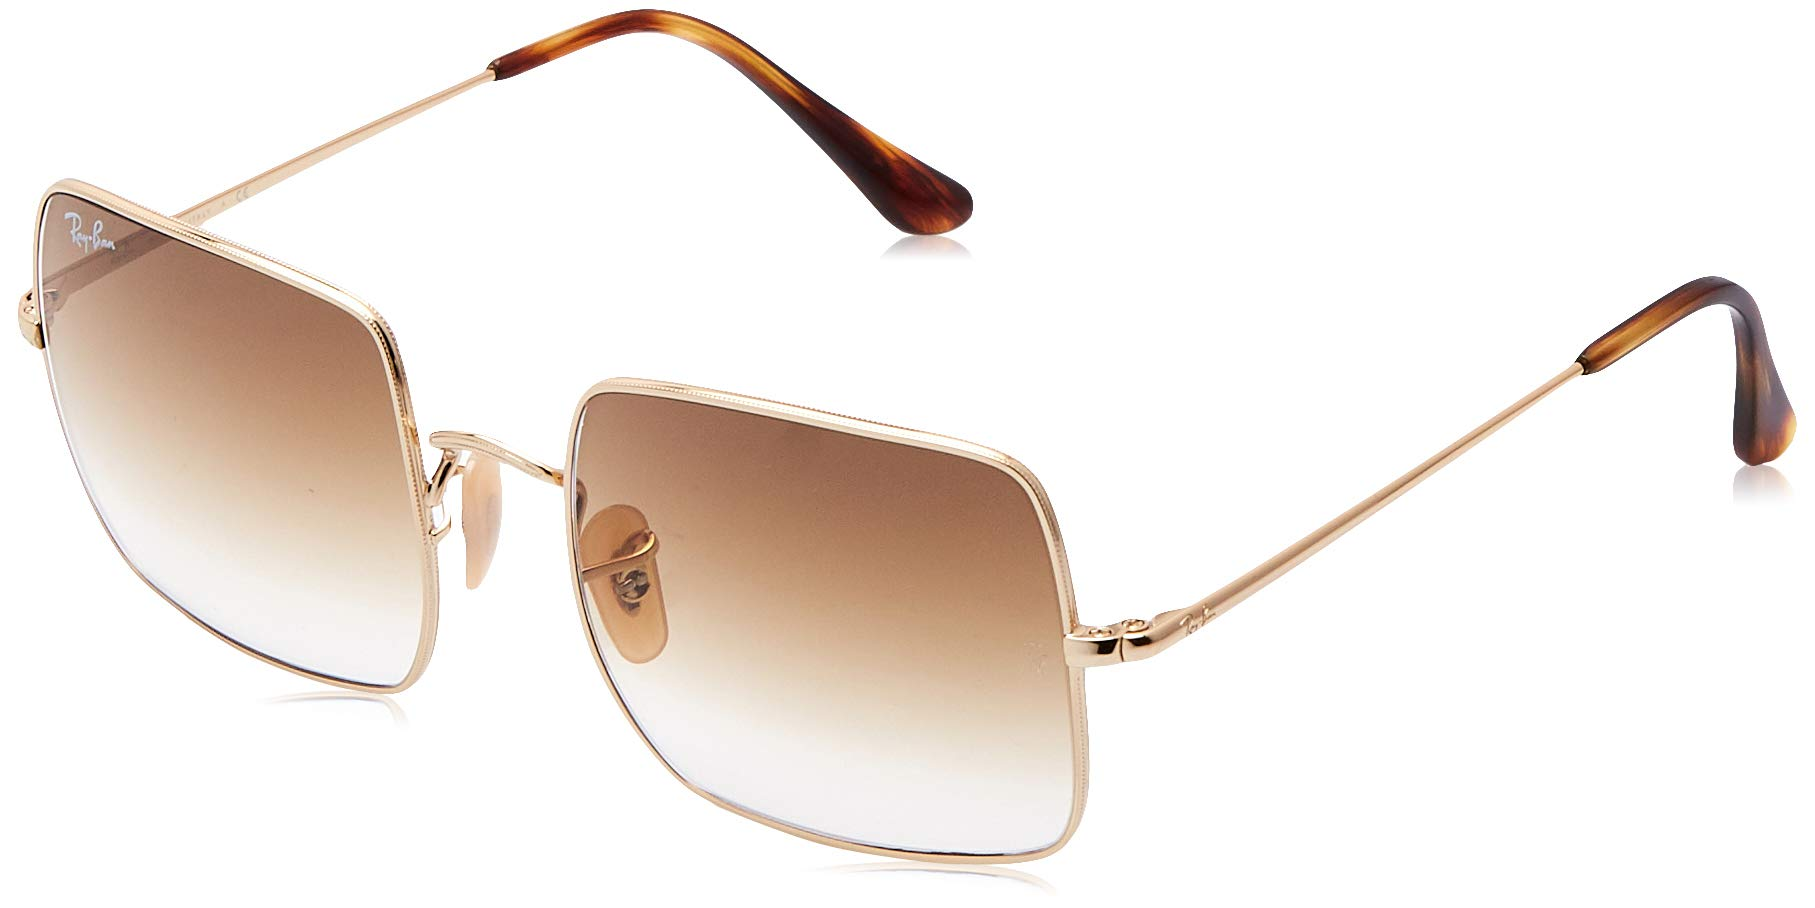 RAY-BAN RB1971 Square Classic Metal Sunglasses, Gold/Brown Gradient, 54 mm by RAY-BAN